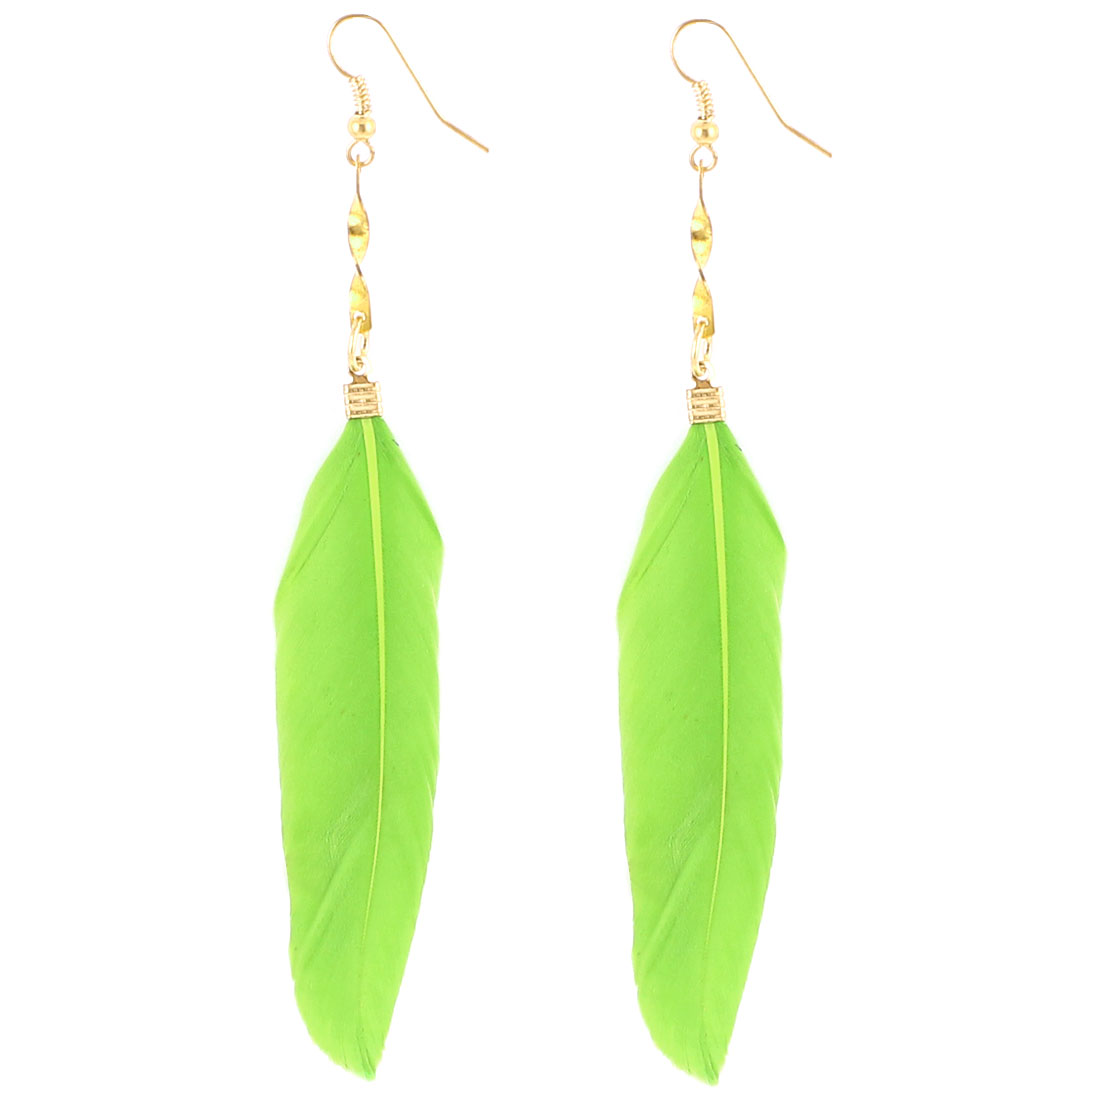 Lady Faux Feather Pendant Fish Hook Dangling Earrings Eardrop 2 Pcs Pale Green